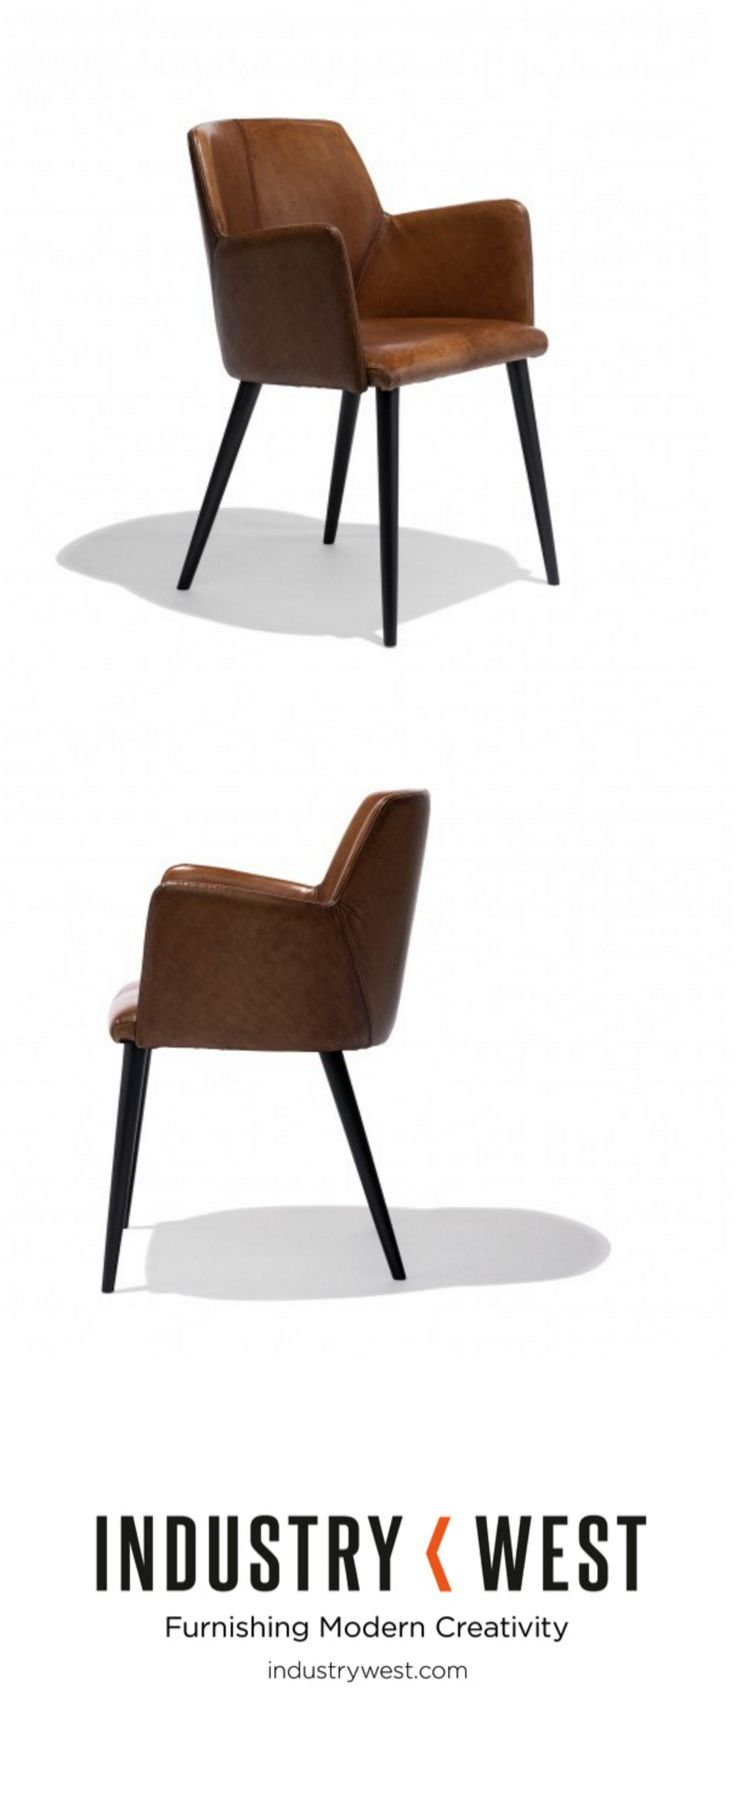 The Porter Chair Is Crafted From Exquisite, Genuine, Buffalo Leather. The  Buffalo Leather